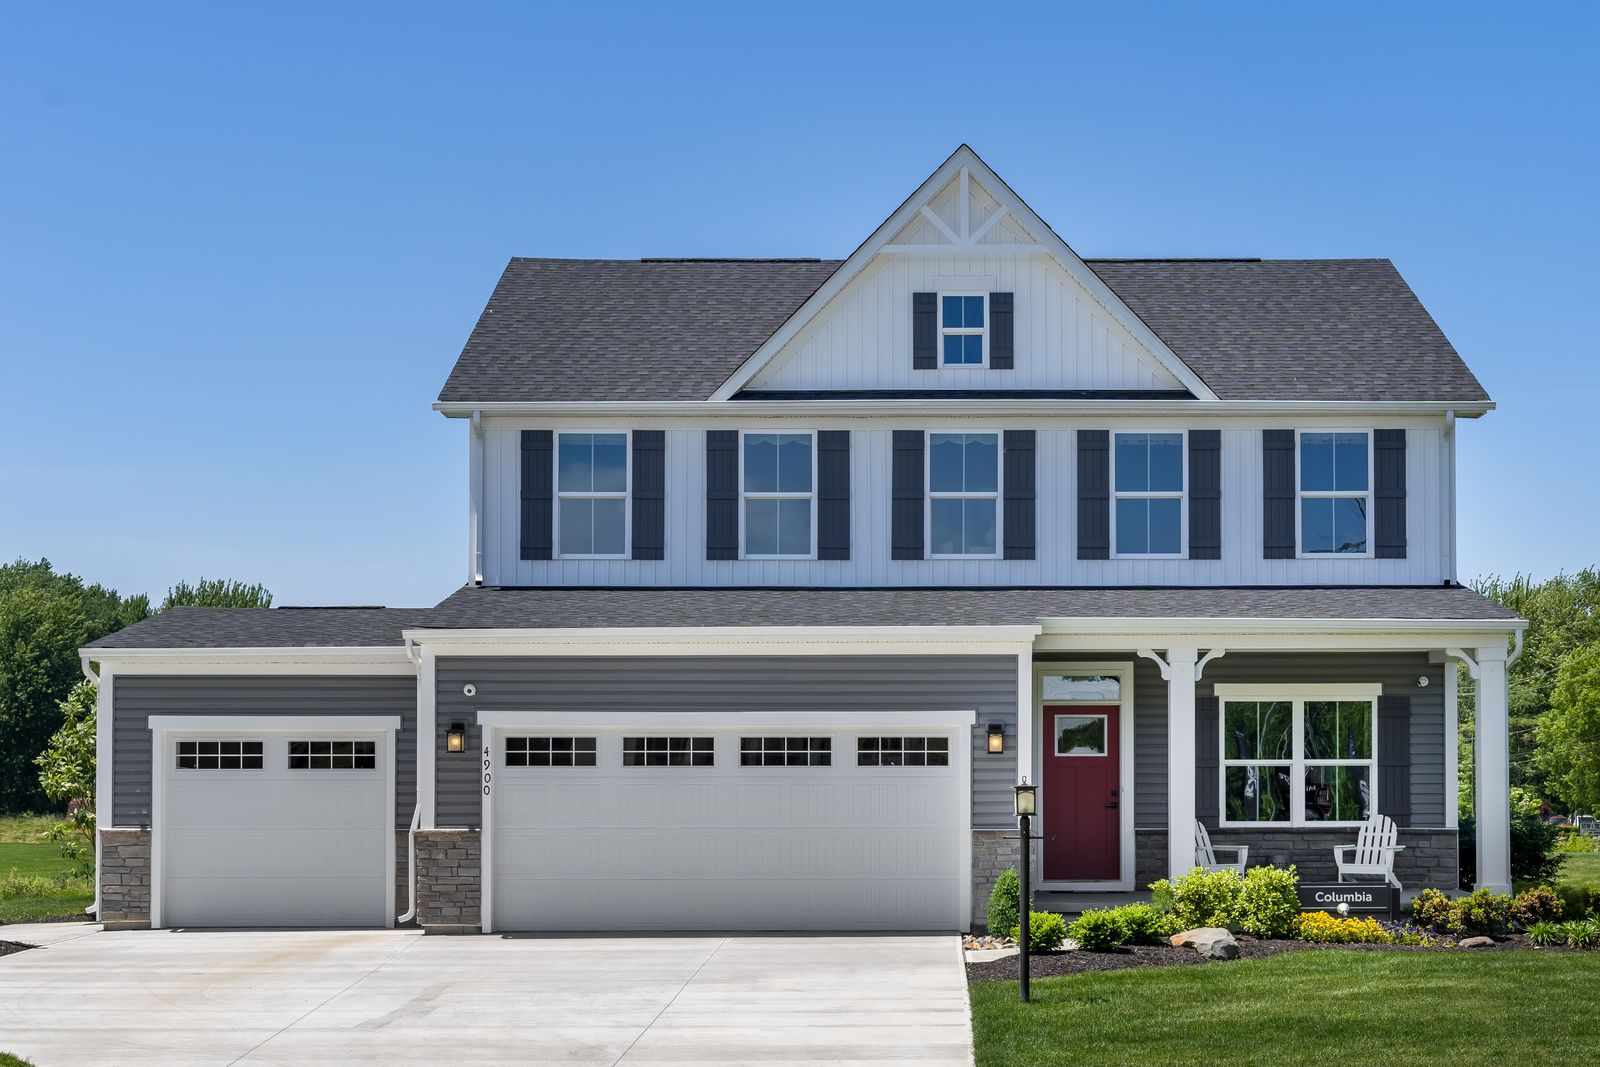 NEW PHASE COMING SOON TO EWING MEADOWS - JOIN THE VIP LIST TODAY!